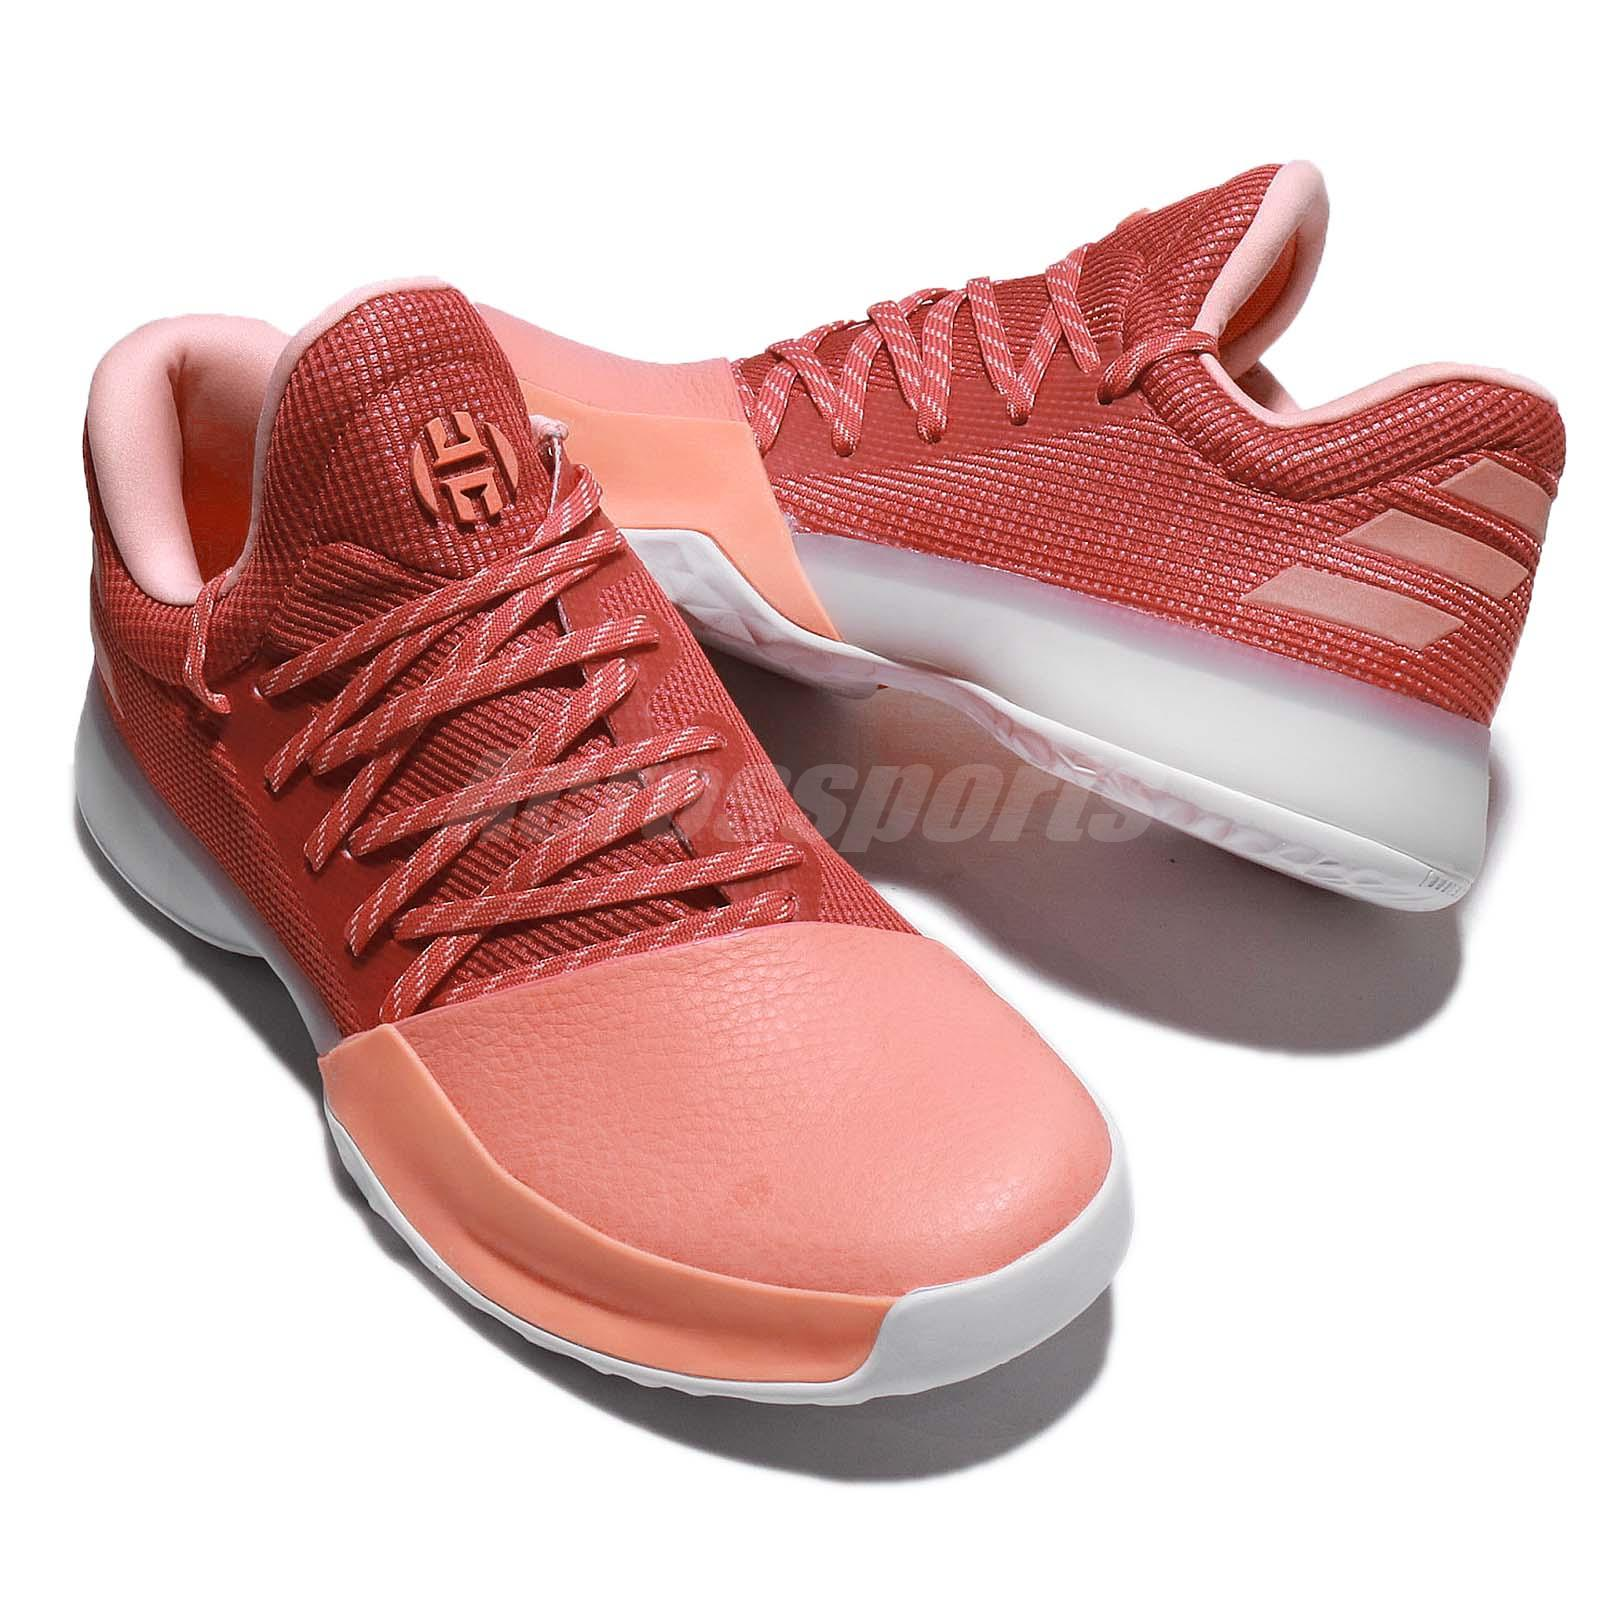 95fa7a1755f 1 men basketball shoes ... all size 4eb38 01109 adidas Harden Vol. 1 Chalk  Coral Scarlet Two ...